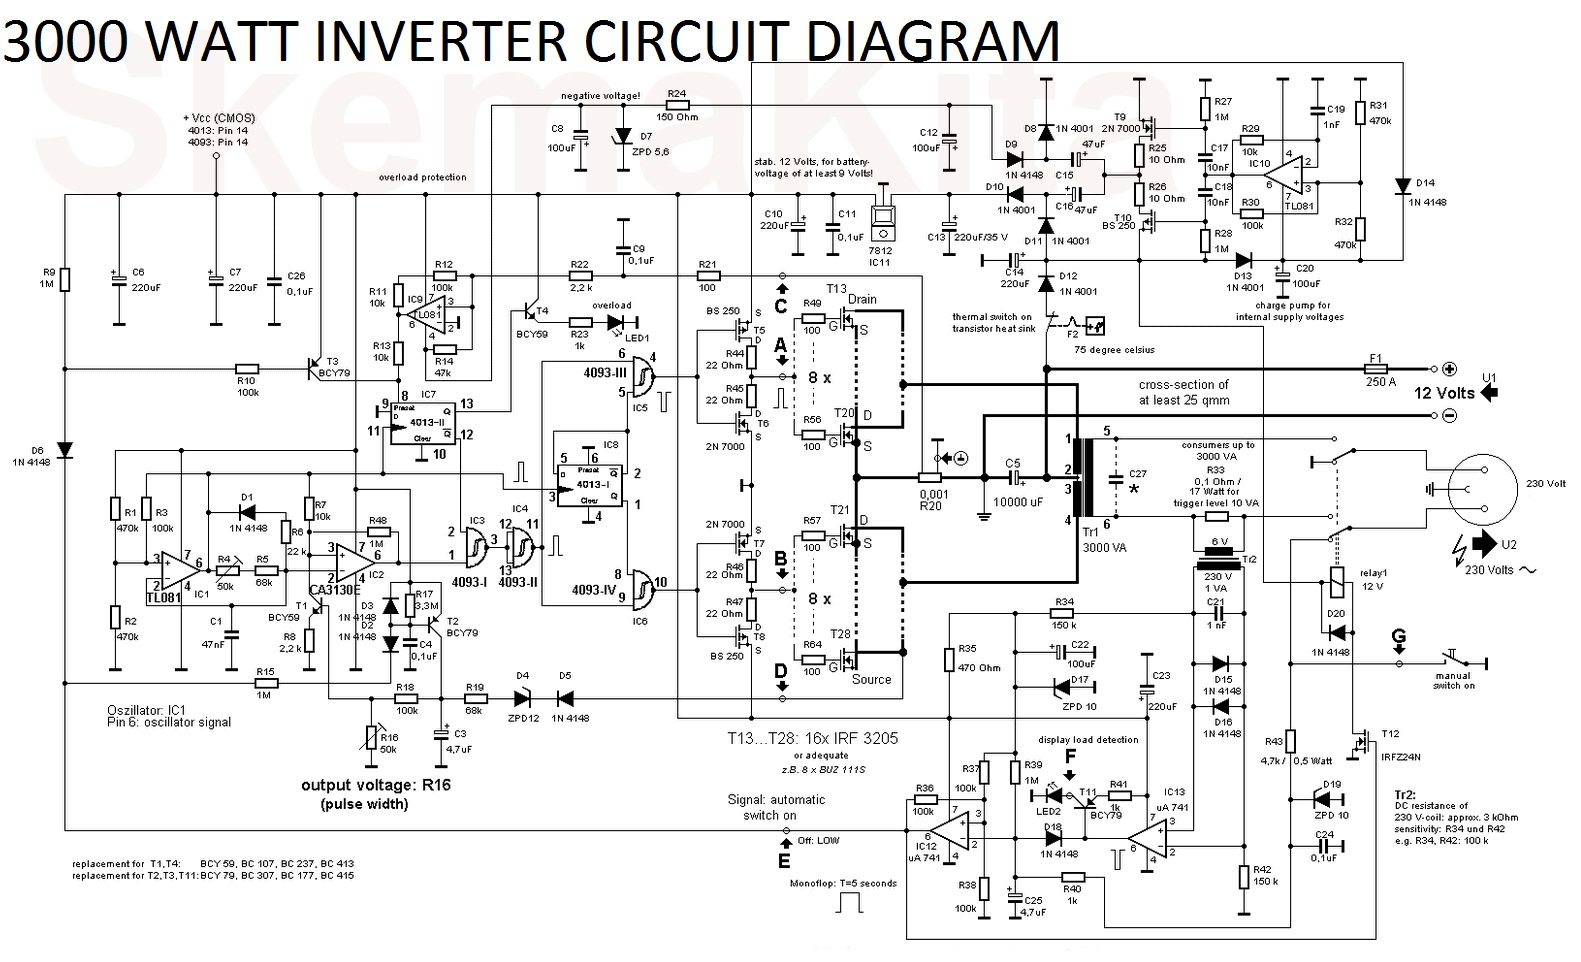 Watt Inverter Circuit Diagram Electronic Circuit - Circuit diagram of an inverter